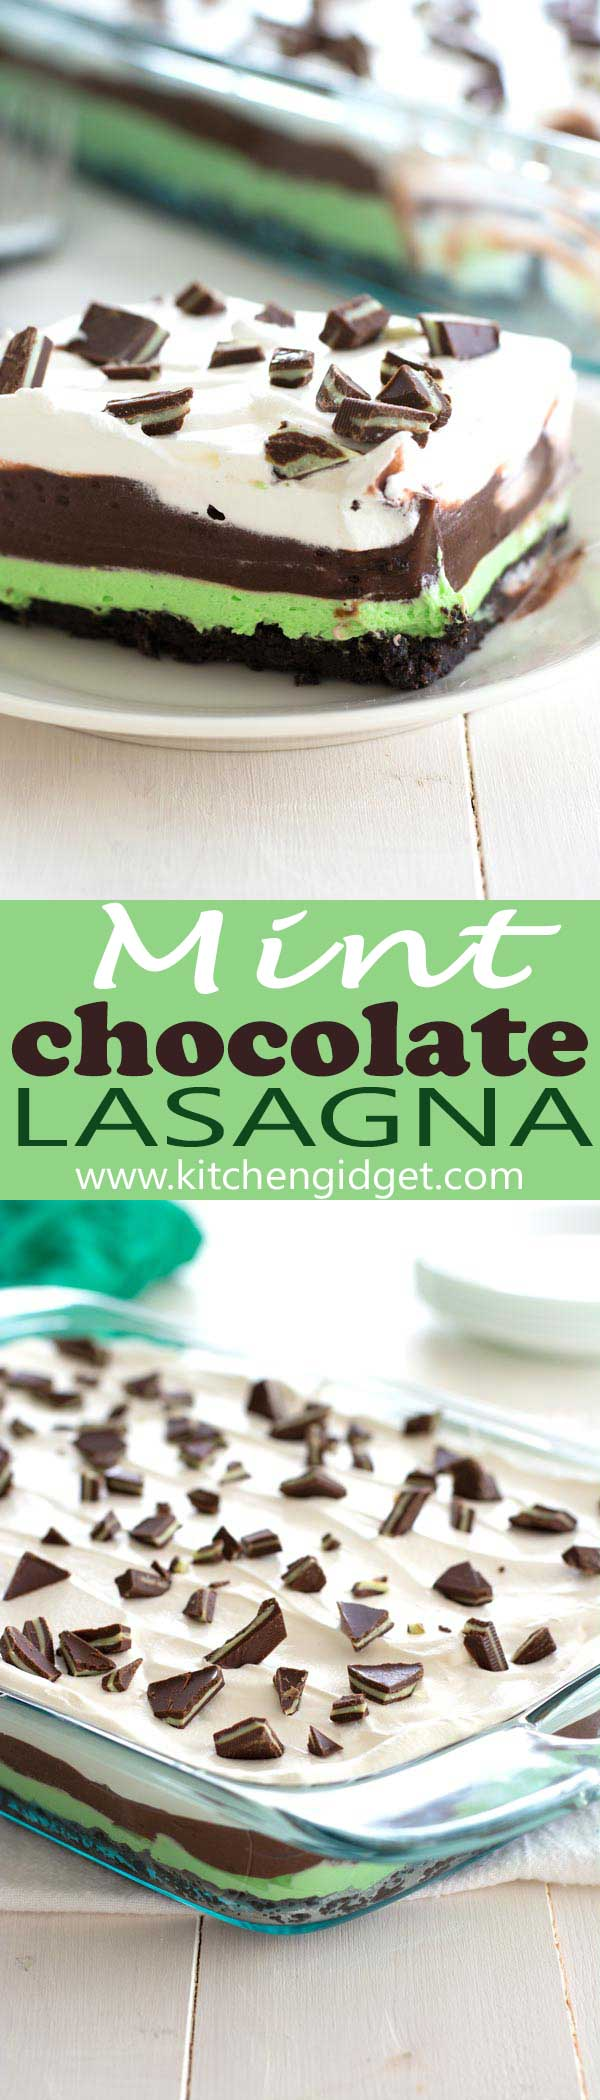 Mint Chocolate Lasagna no-bake dessert with layers of mint cream cheese and chocolate pudding on an Oreo crust. This cool, minty Oreo Delight is the perfect ending to any meal!